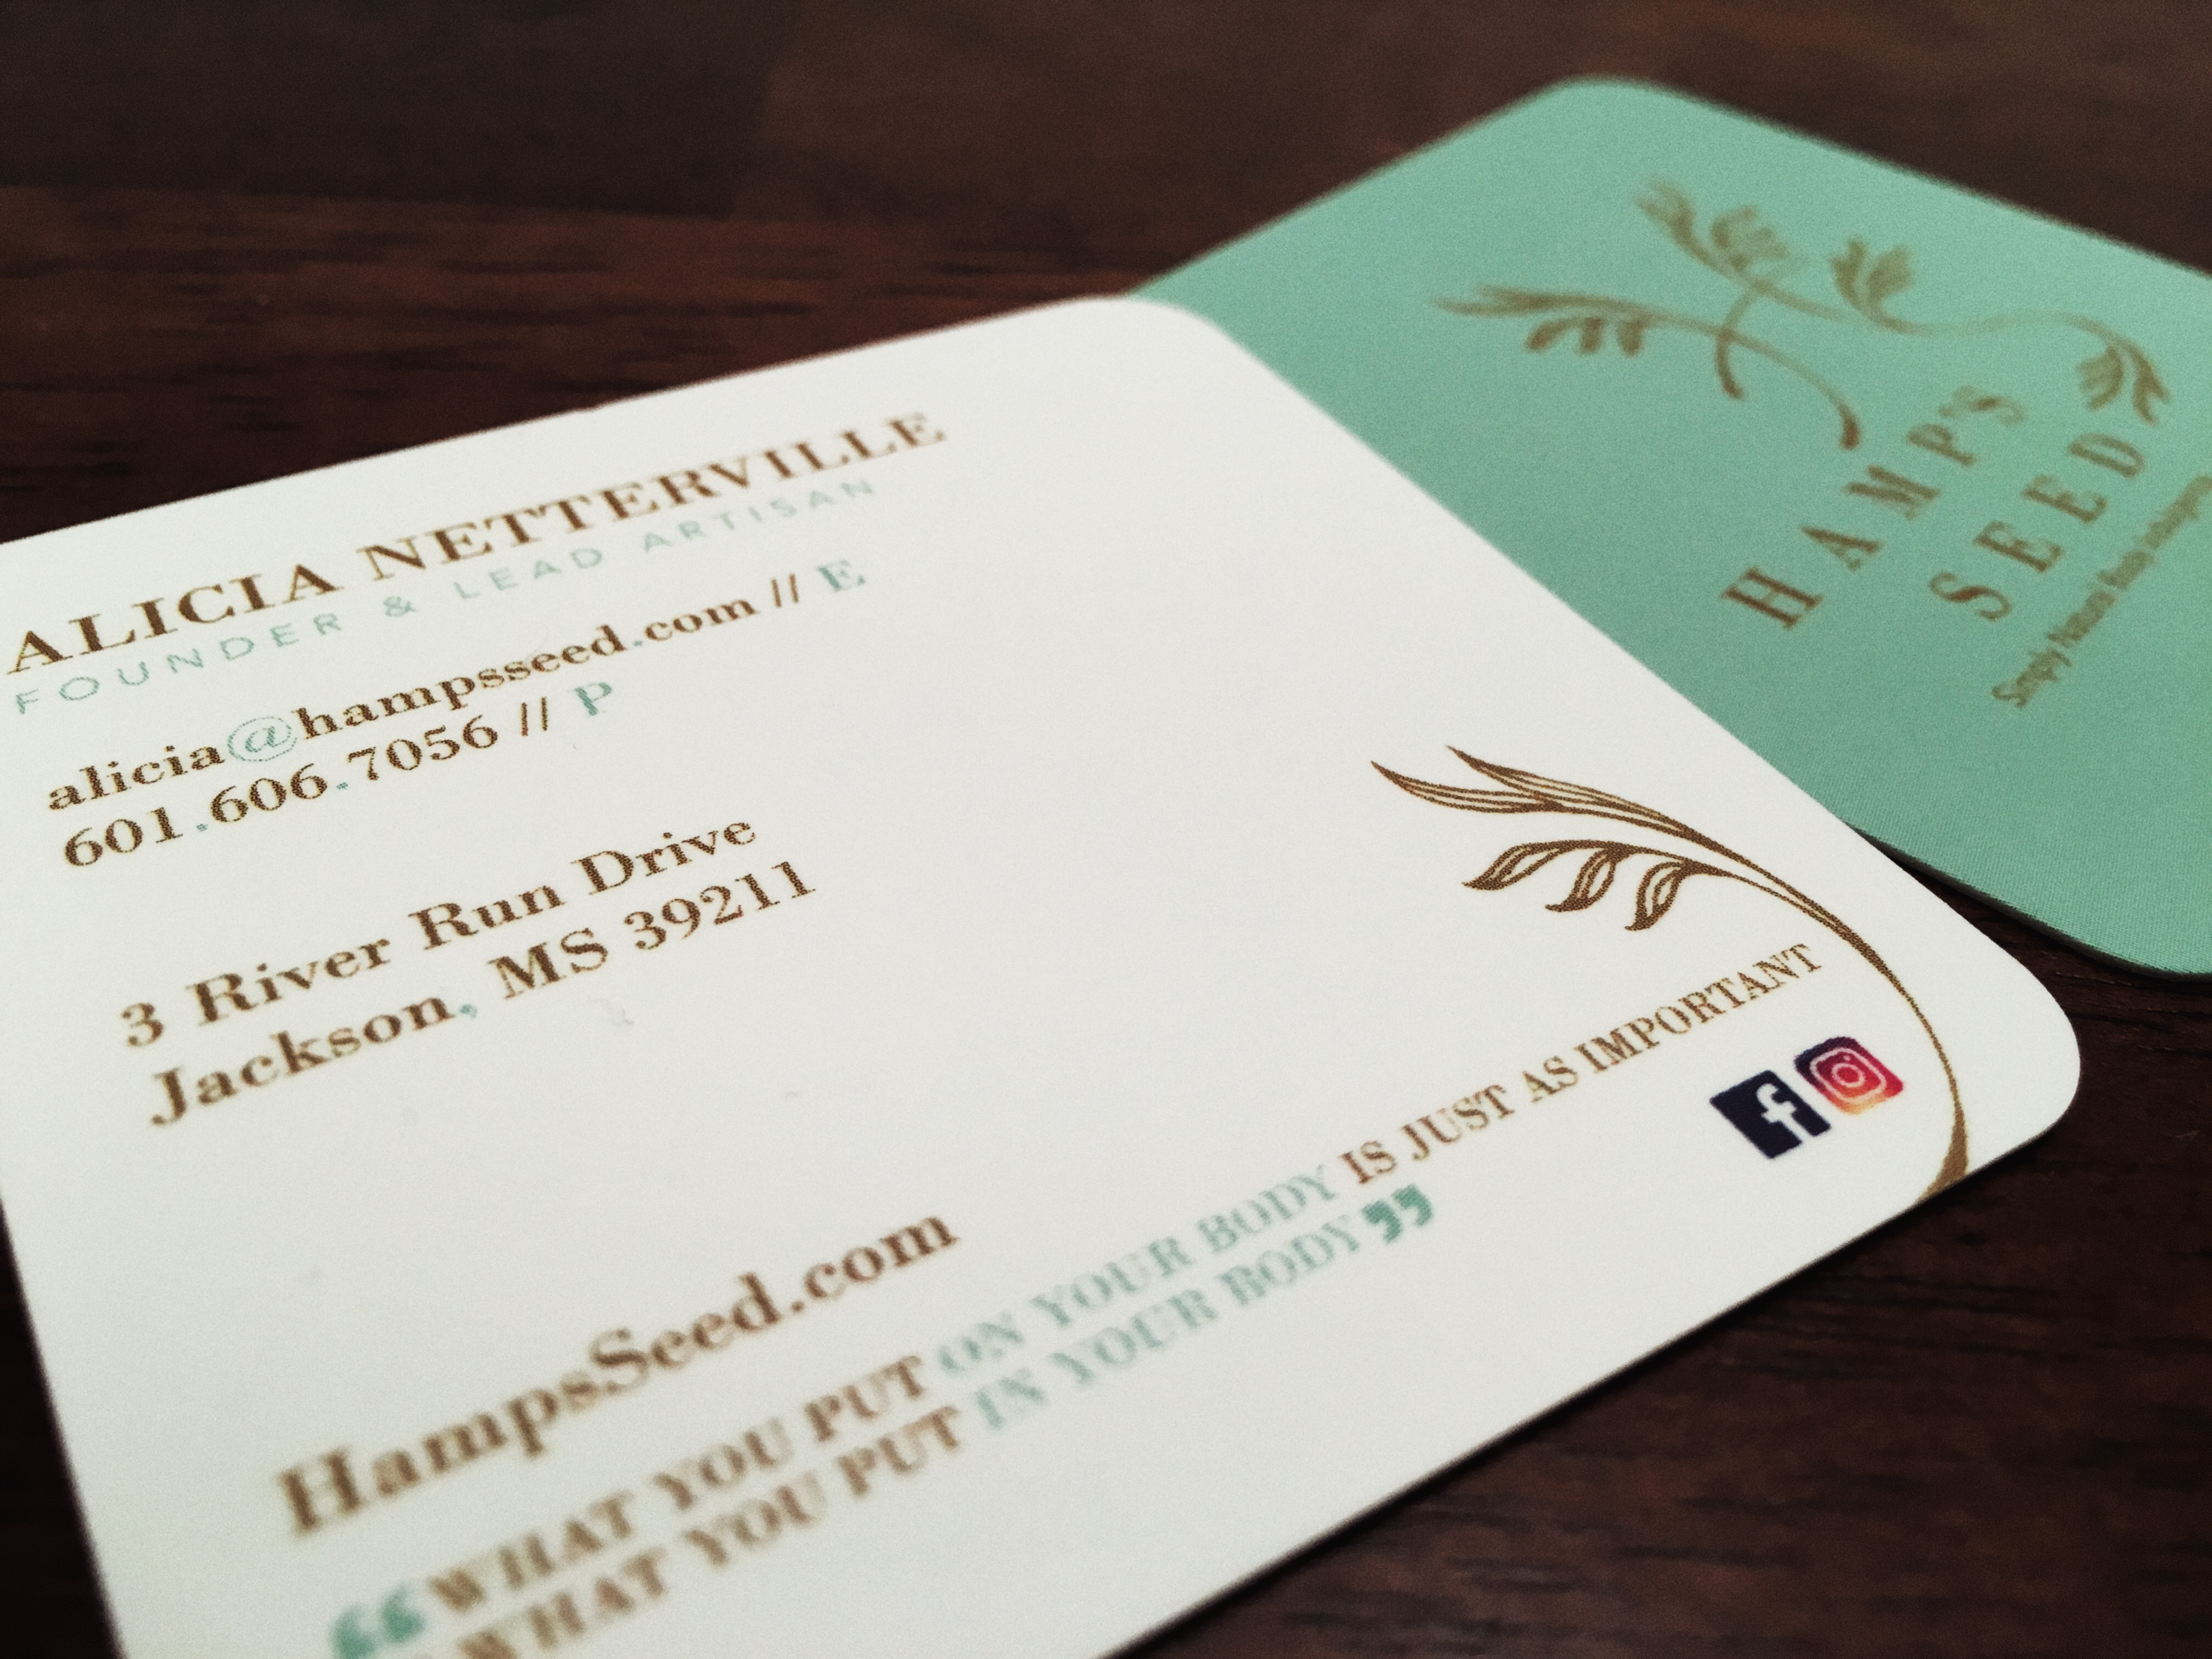 That Creative Guy. Hamp's Seed Business Card Design. brand expert. graphic design. web design in mississippi.